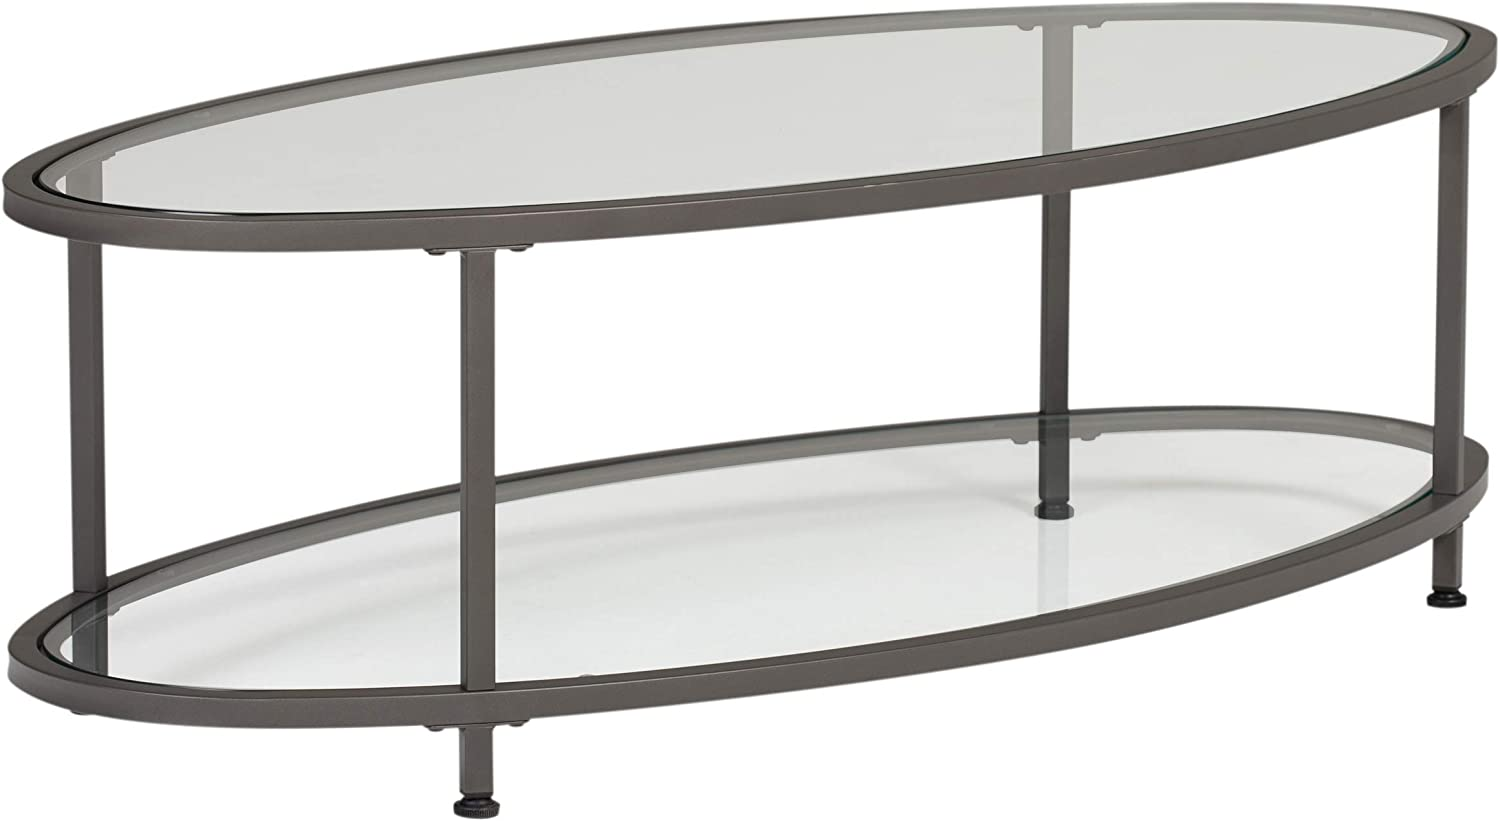 studio designs home camber oval glass coffee table in pewter with clear glass living room coffee table 48